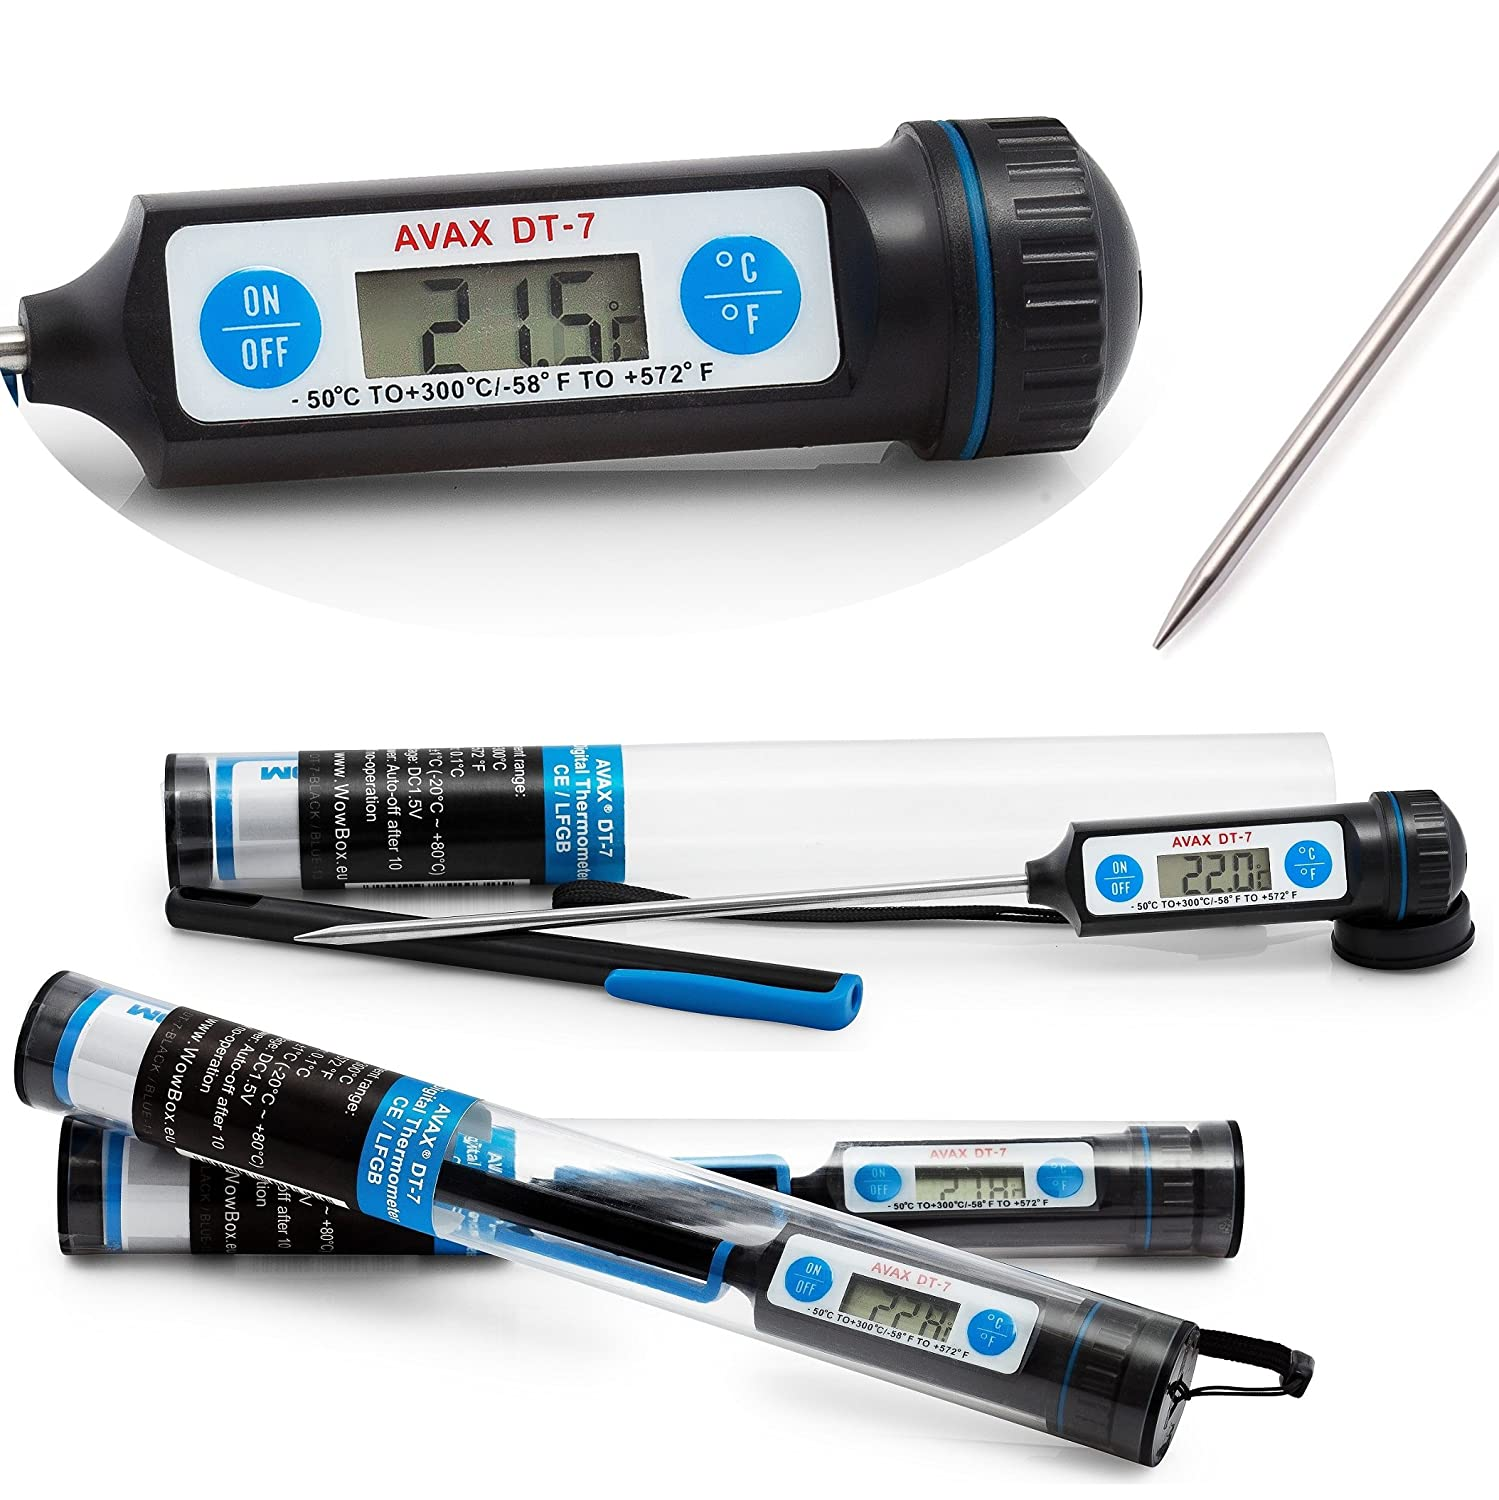 AVAX DT-7 - Digital LCD Food Thermometer Kitchen Cooking Probe for Wine, Food, Meat, Steak, Turkey, BBQ, Yerba Mate, etc. - Temperature range: -50C to 300C / -58F to 572F - (tube packaging and a protective cap included for better protection) - Battery Inc